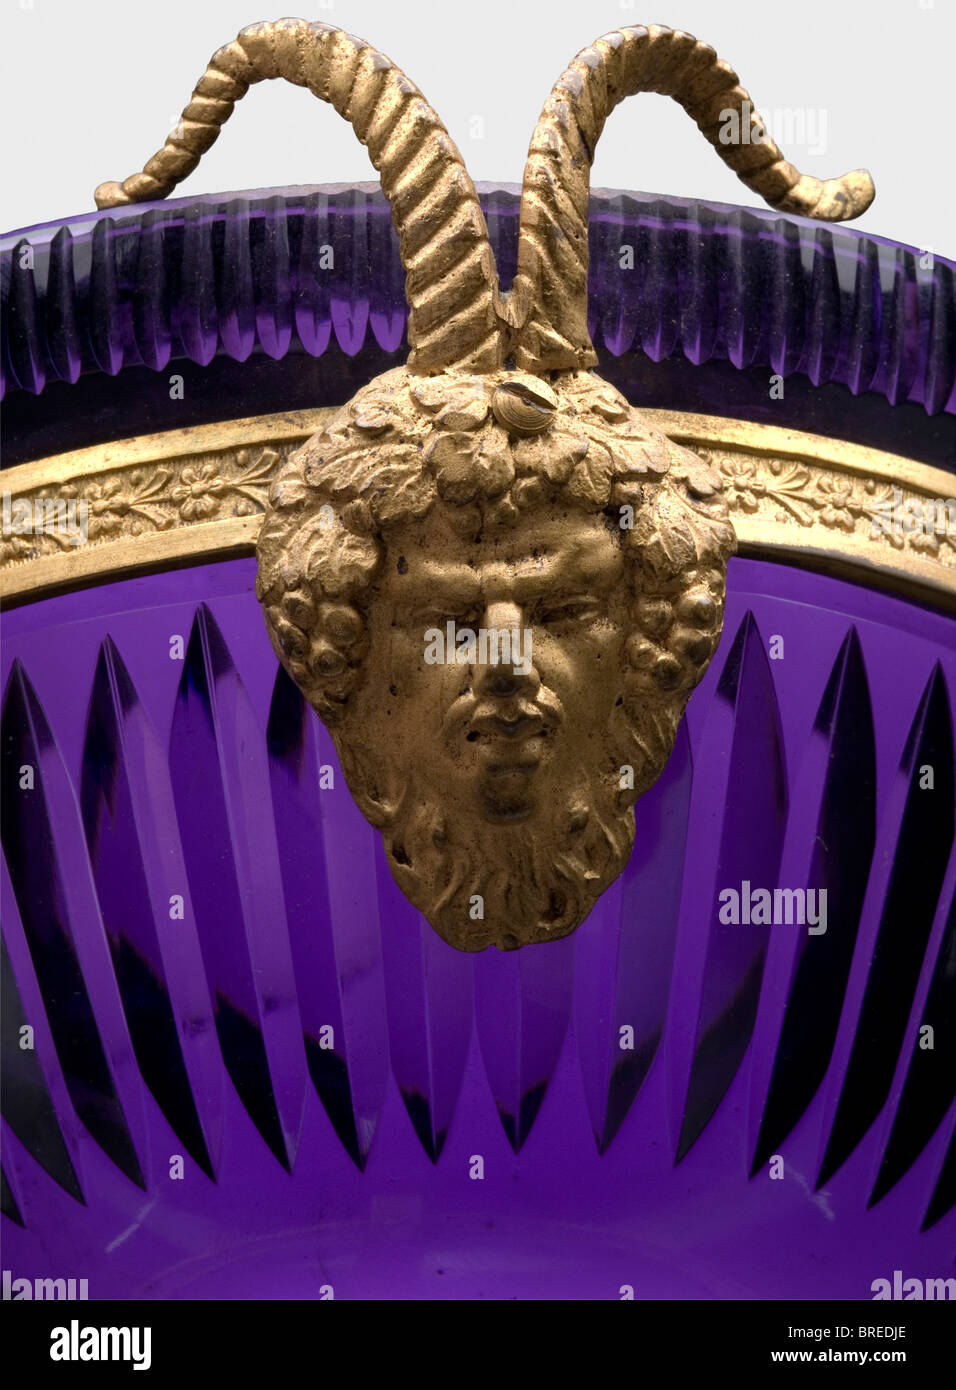 An Austrian confectionery dish, end of the 19th century Crystal glass flashed in violet. Fire-gilt bronze mountings - Stock Image